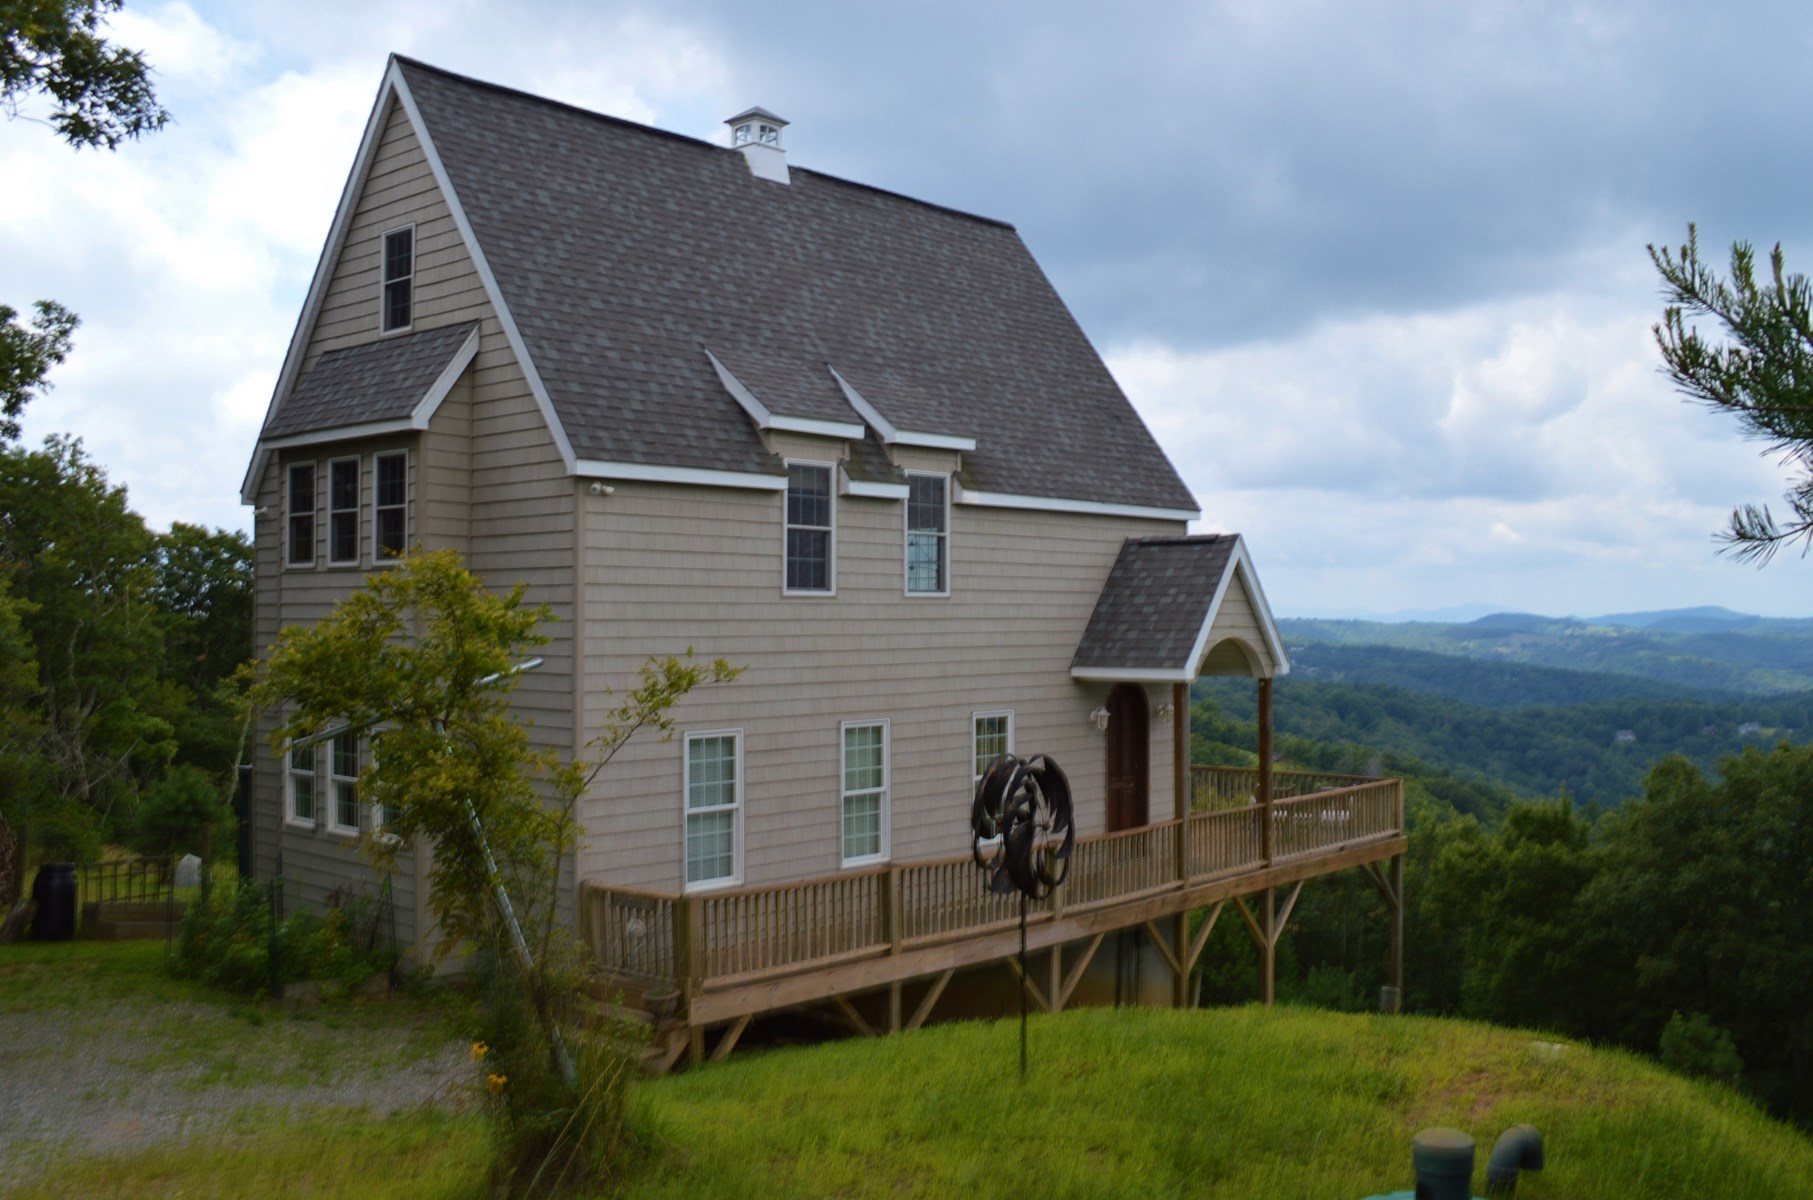 Live High on A Mountain at 3800' Elevation in Sparta,NC